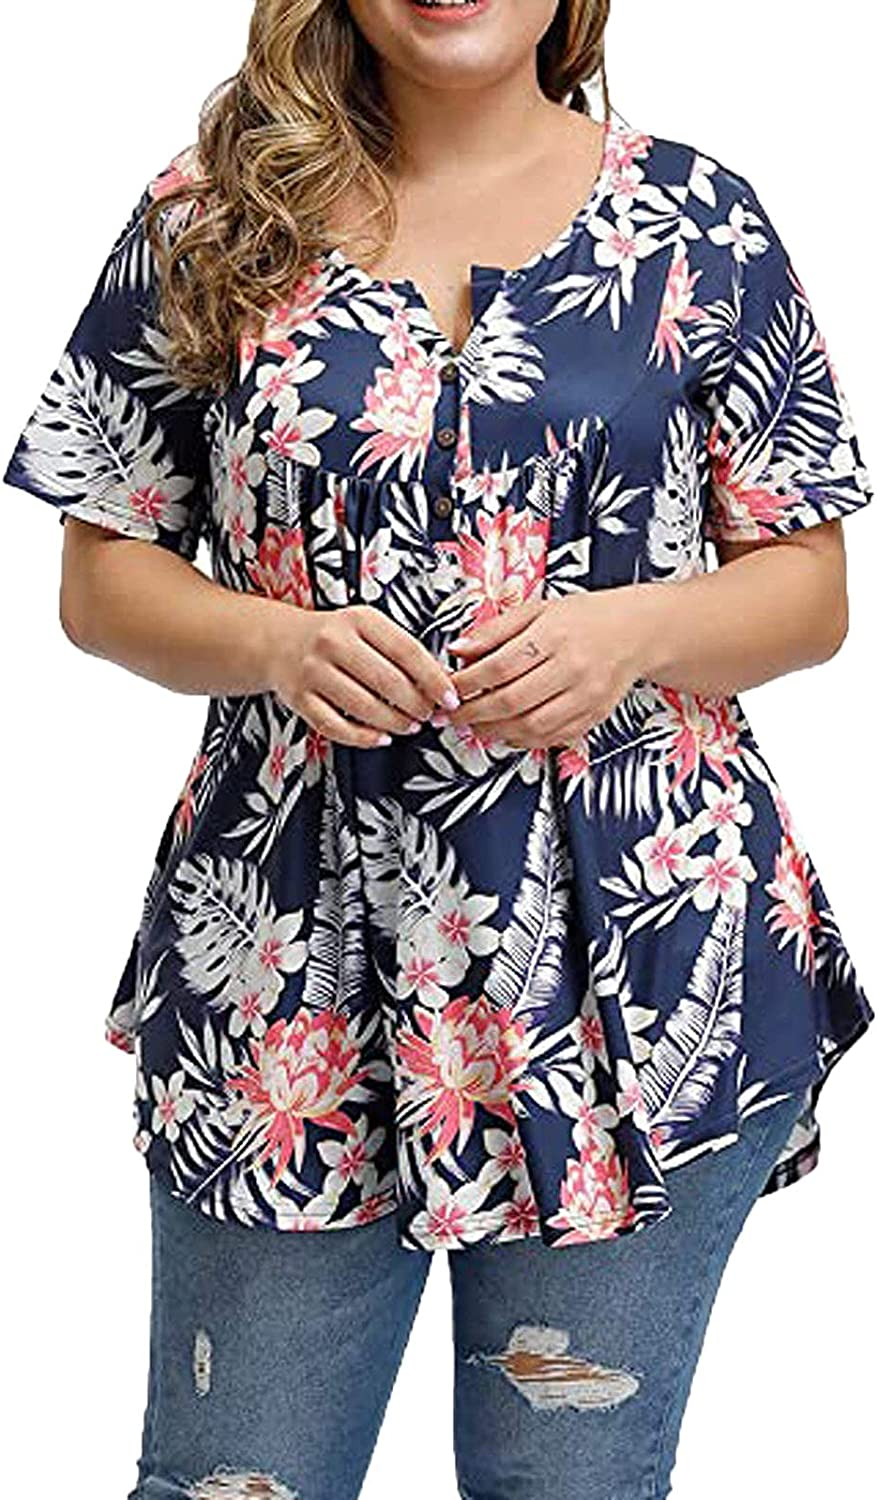 Plus Size Tops Ranking TOP14 for Women Casual Floral P Fashion Tampa Mall T Summer Shirts